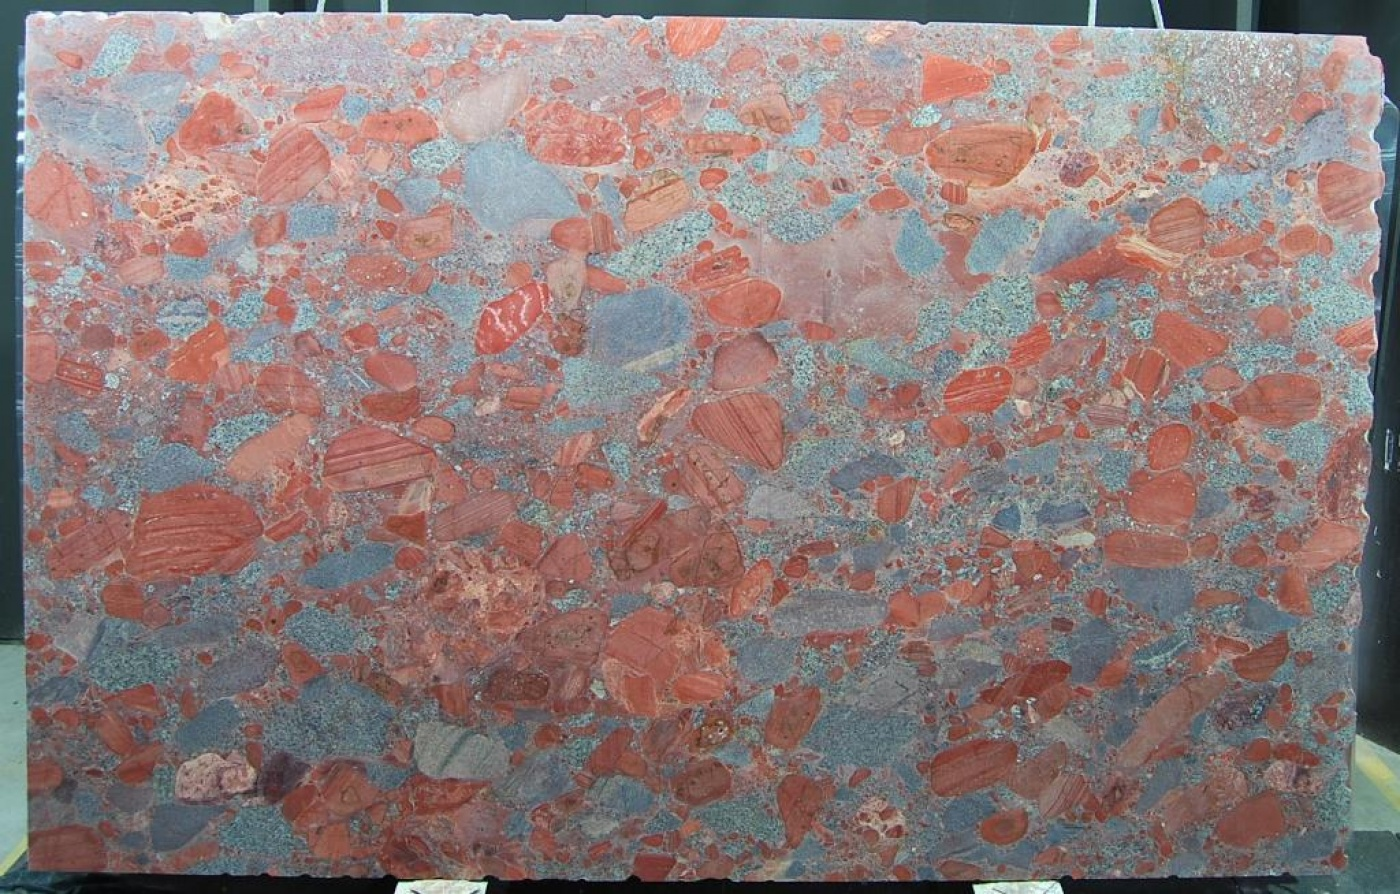 Red Marinace slab